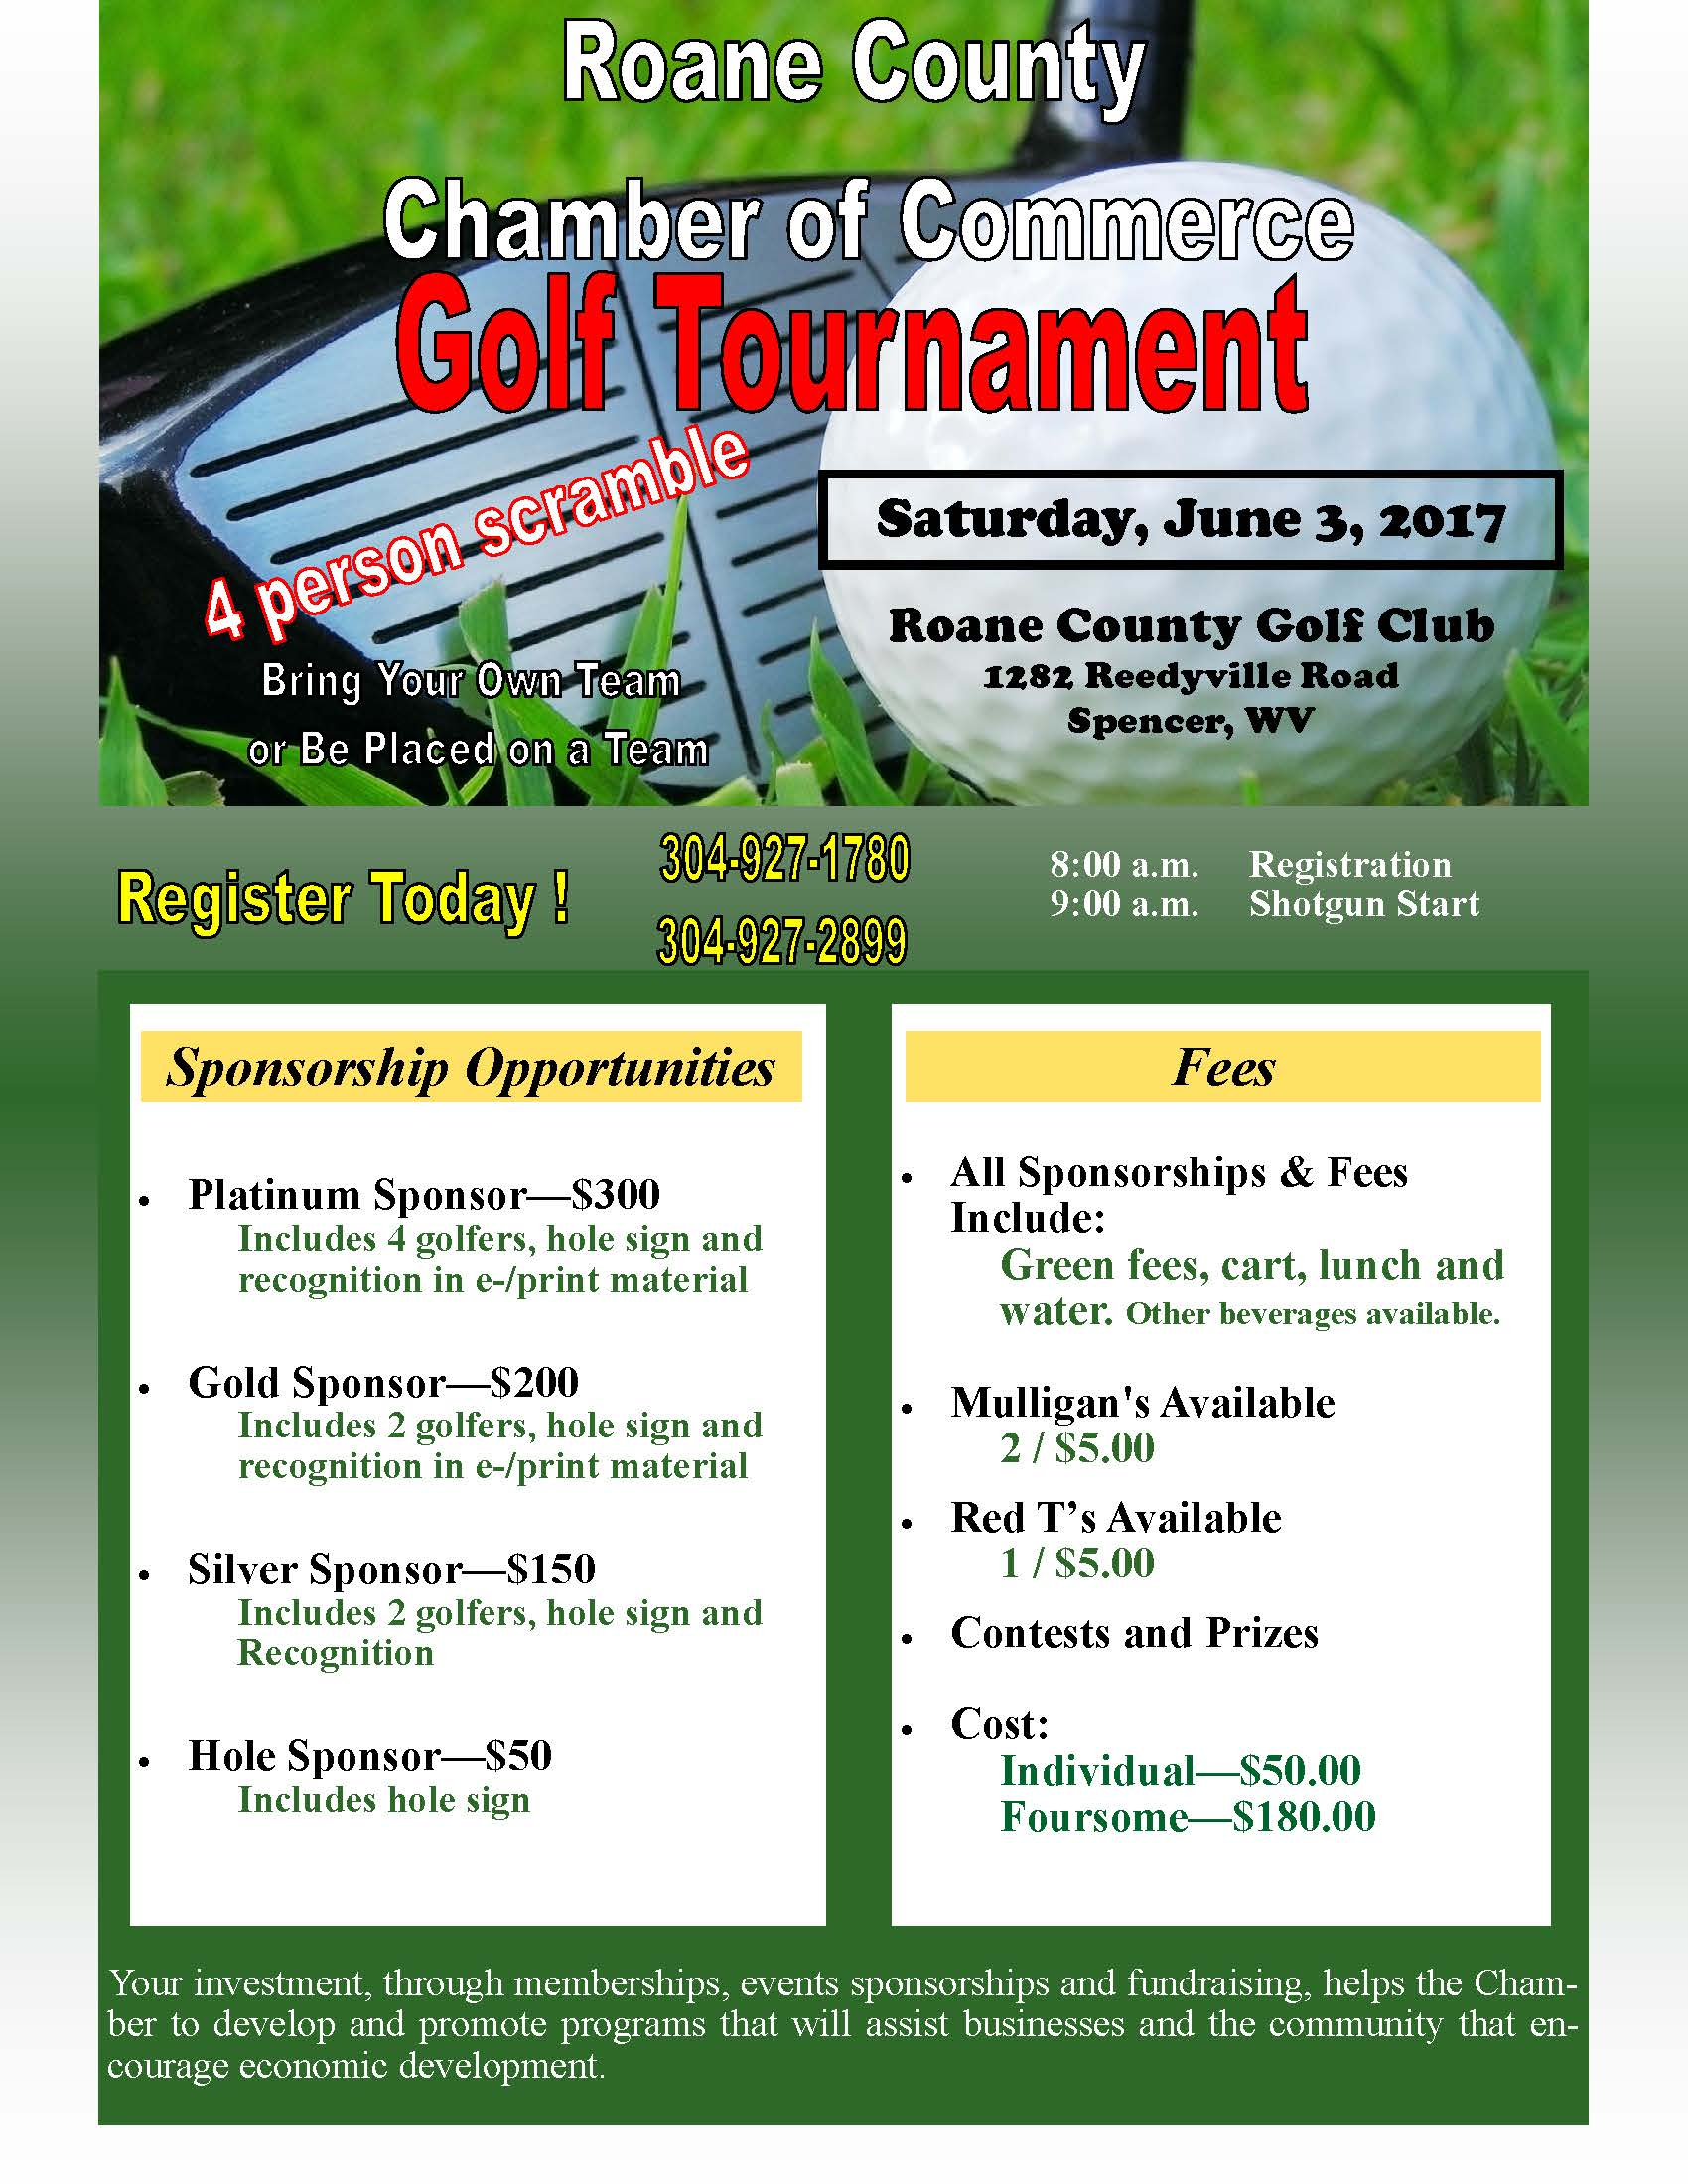 2017 Golf Tournament Flyer 2